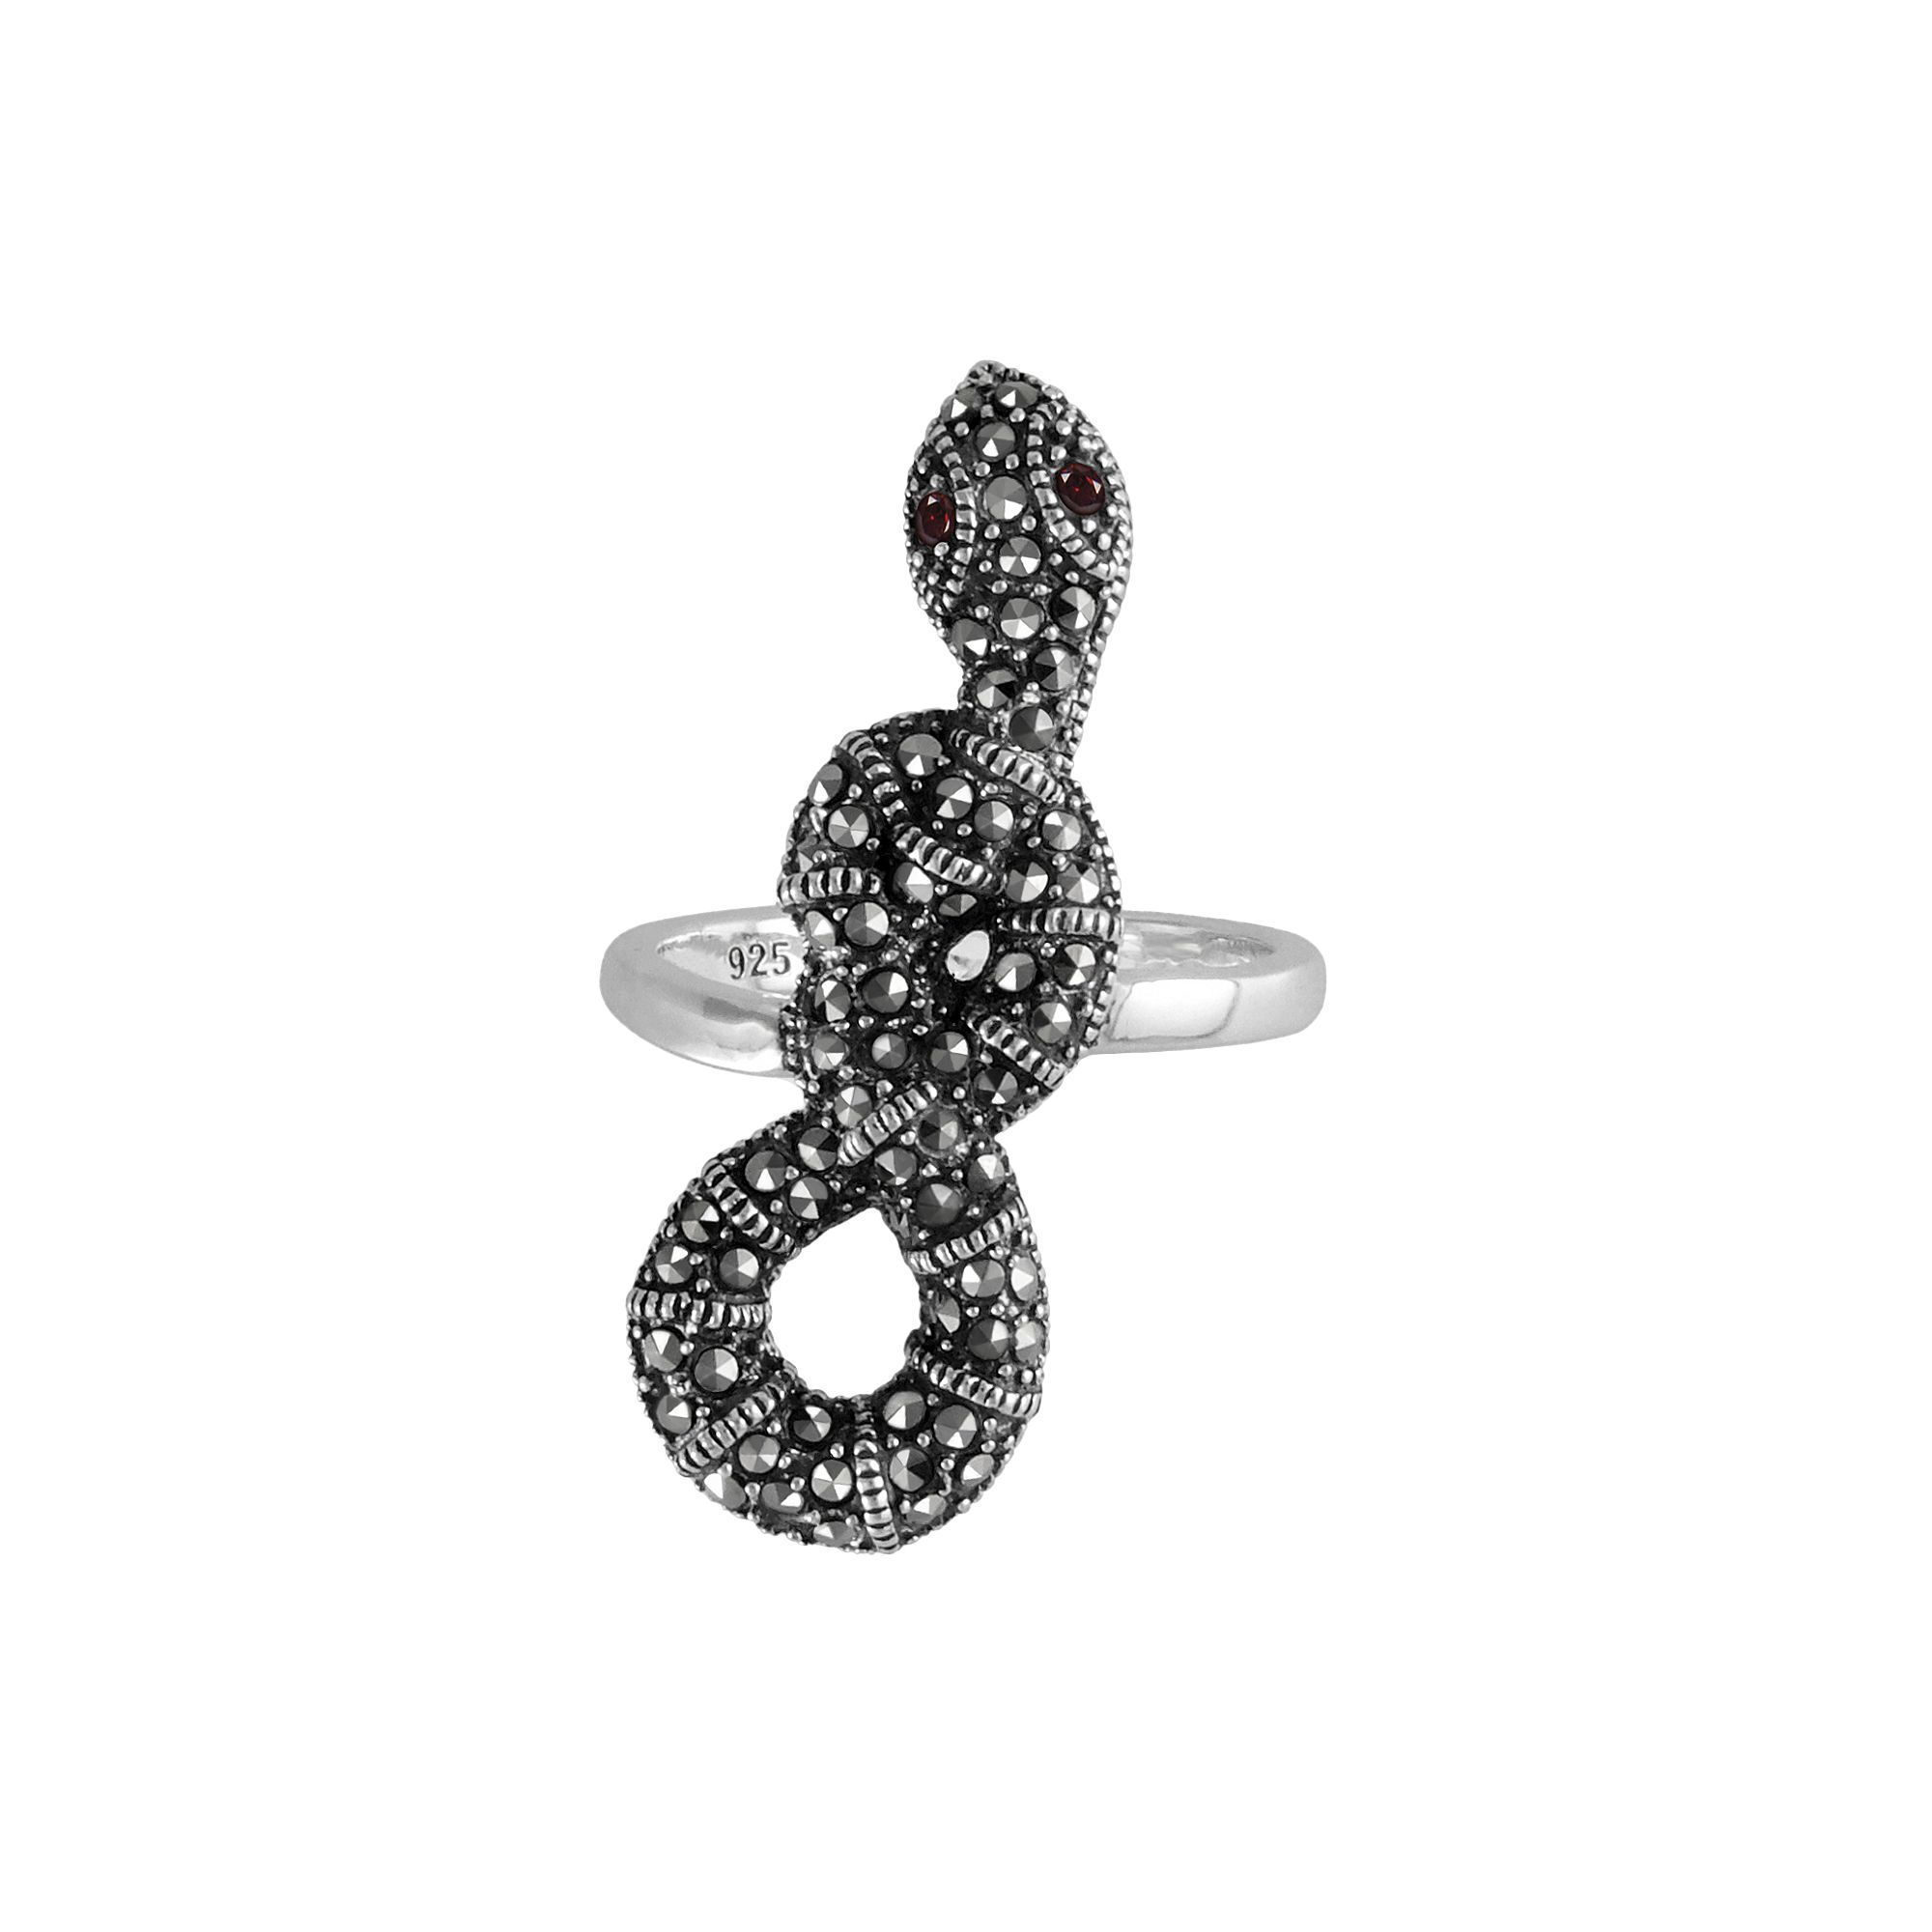 2ee0d7dd6 Lavish by TJM Sterling Silver Garnet Snake Ring - Made with Swarovski  Marcasite, Women's, Size: 6, Red